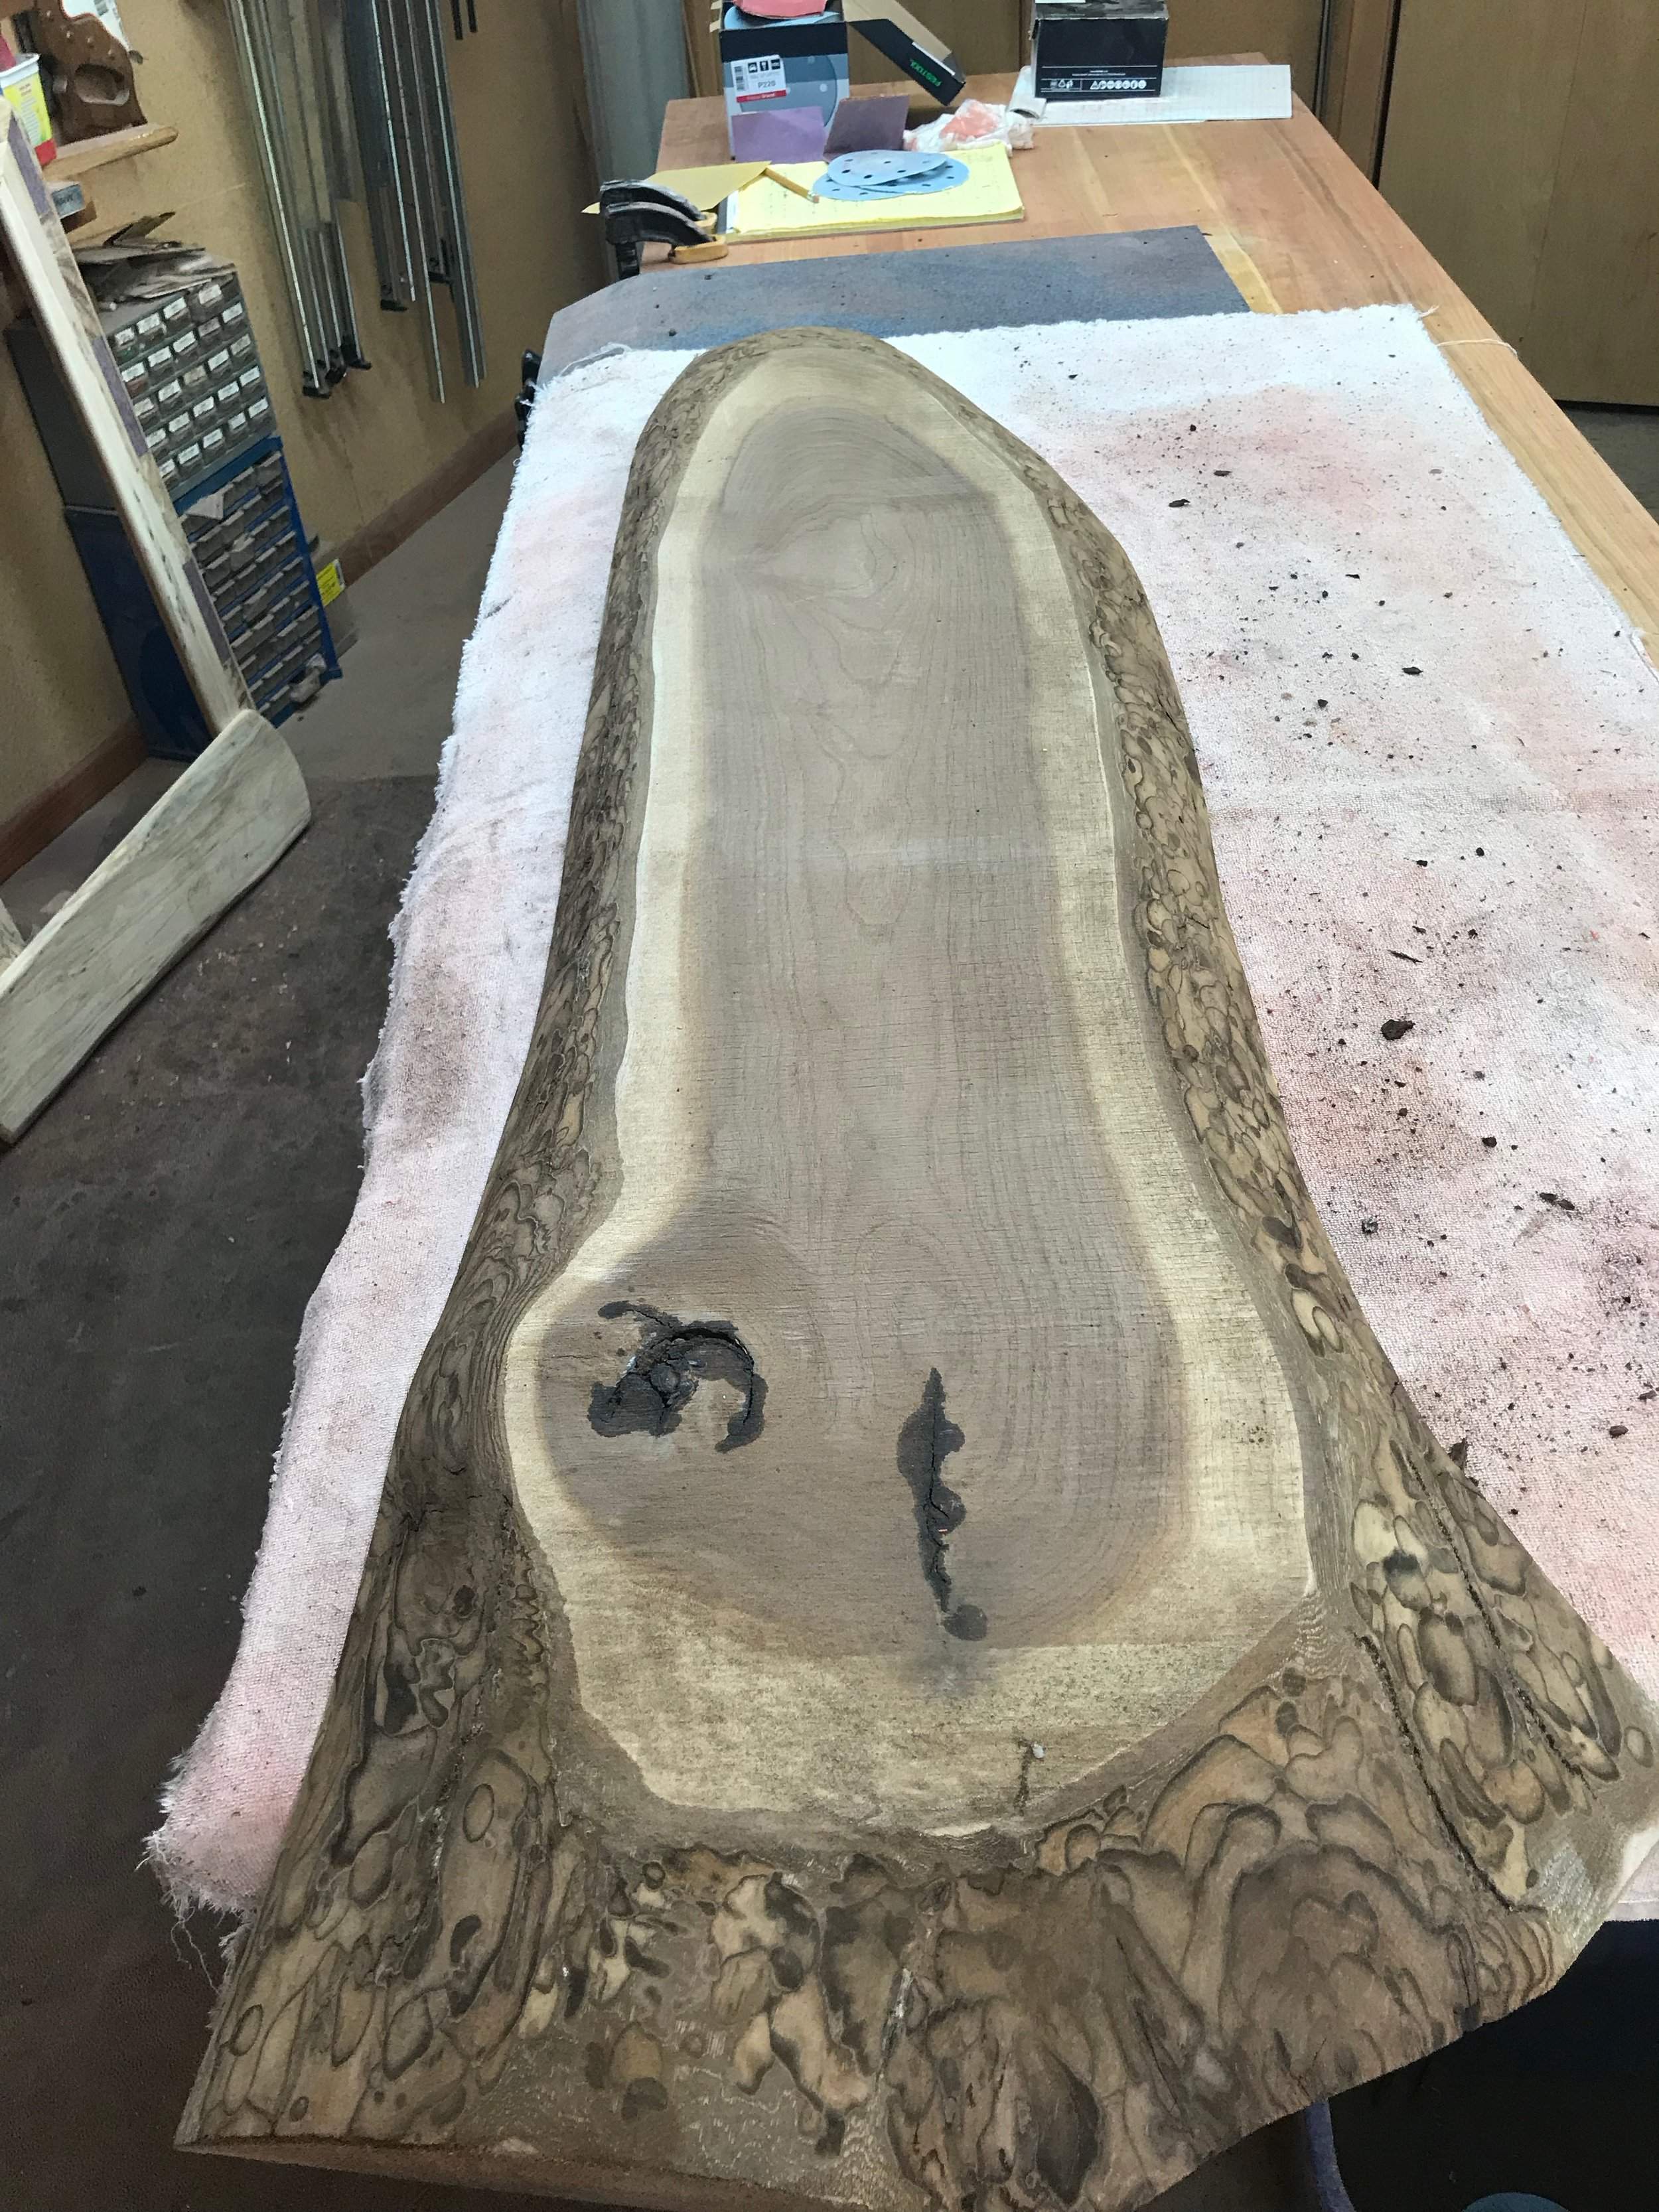 Nearly ready for general sanding of the surface.